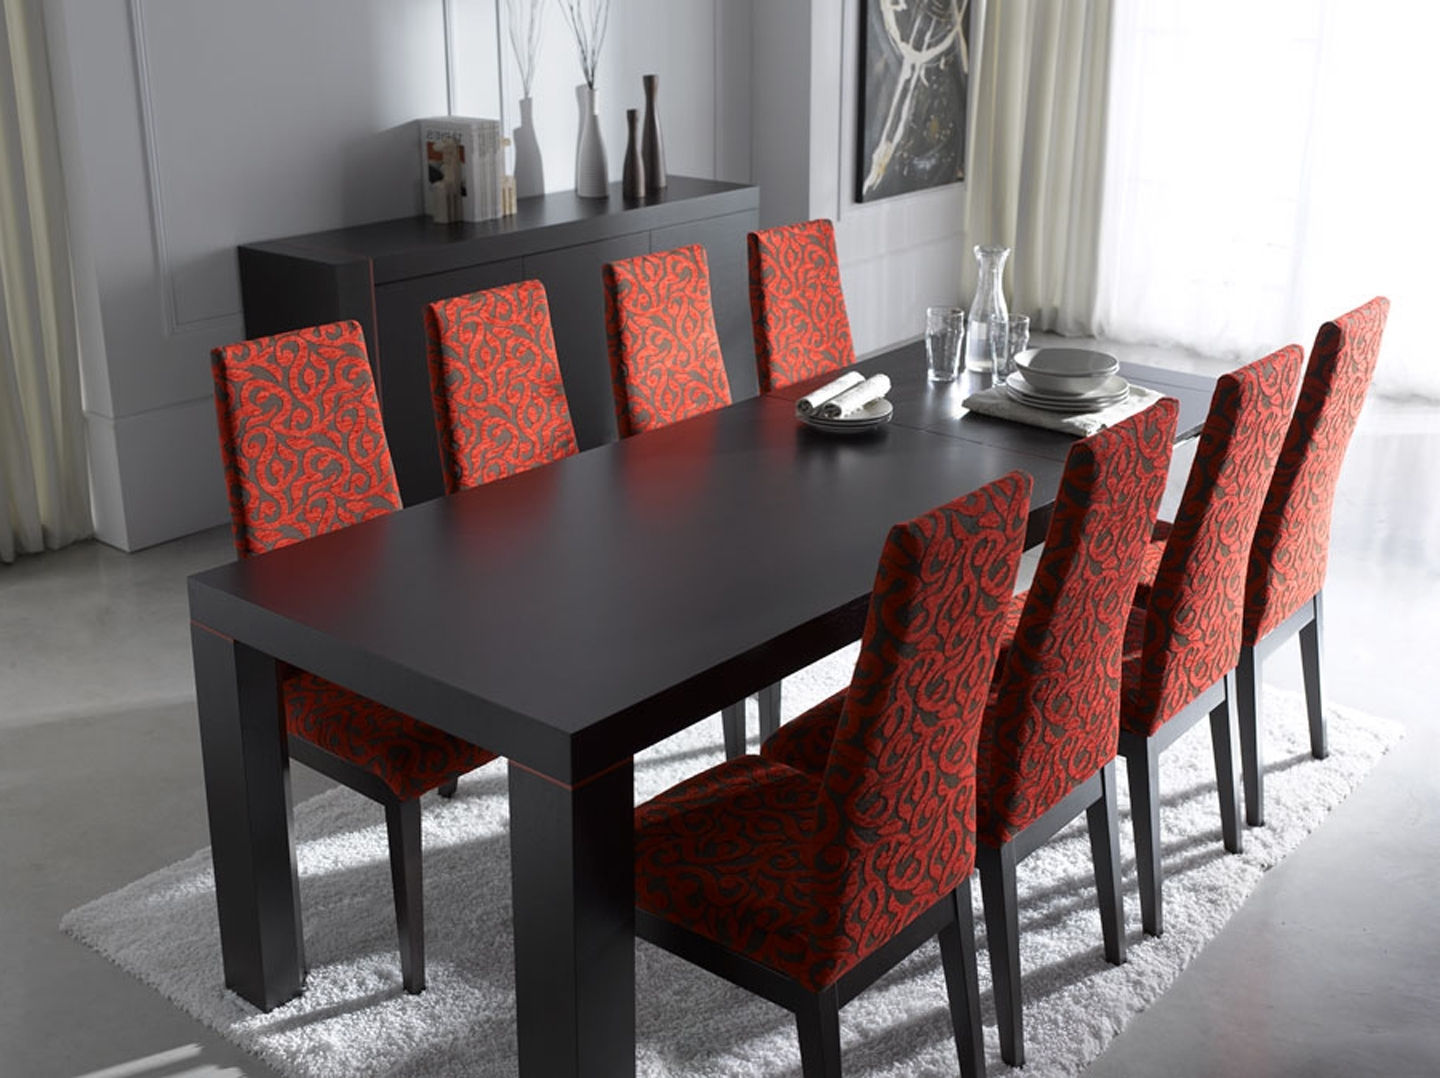 Newest Contemporary Dining Room Tables And Chairs Inside Dining Room : Modern Dining Tables Northern Ireland Room Sets (Gallery 11 of 25)